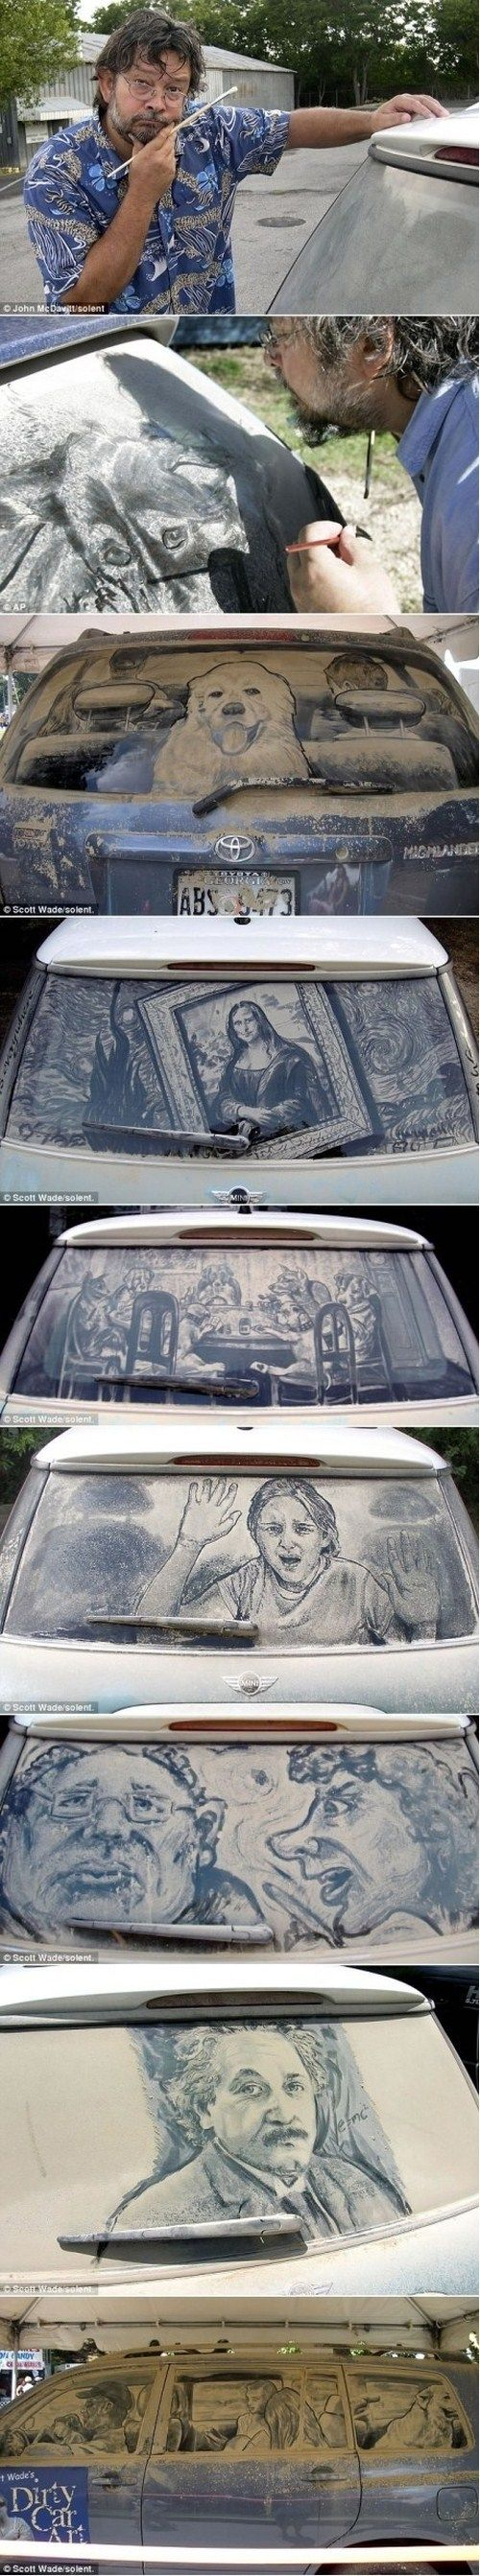 Dirty car art...SHUT. UP! Are you kidding me? These are awesome but who would think to do this?